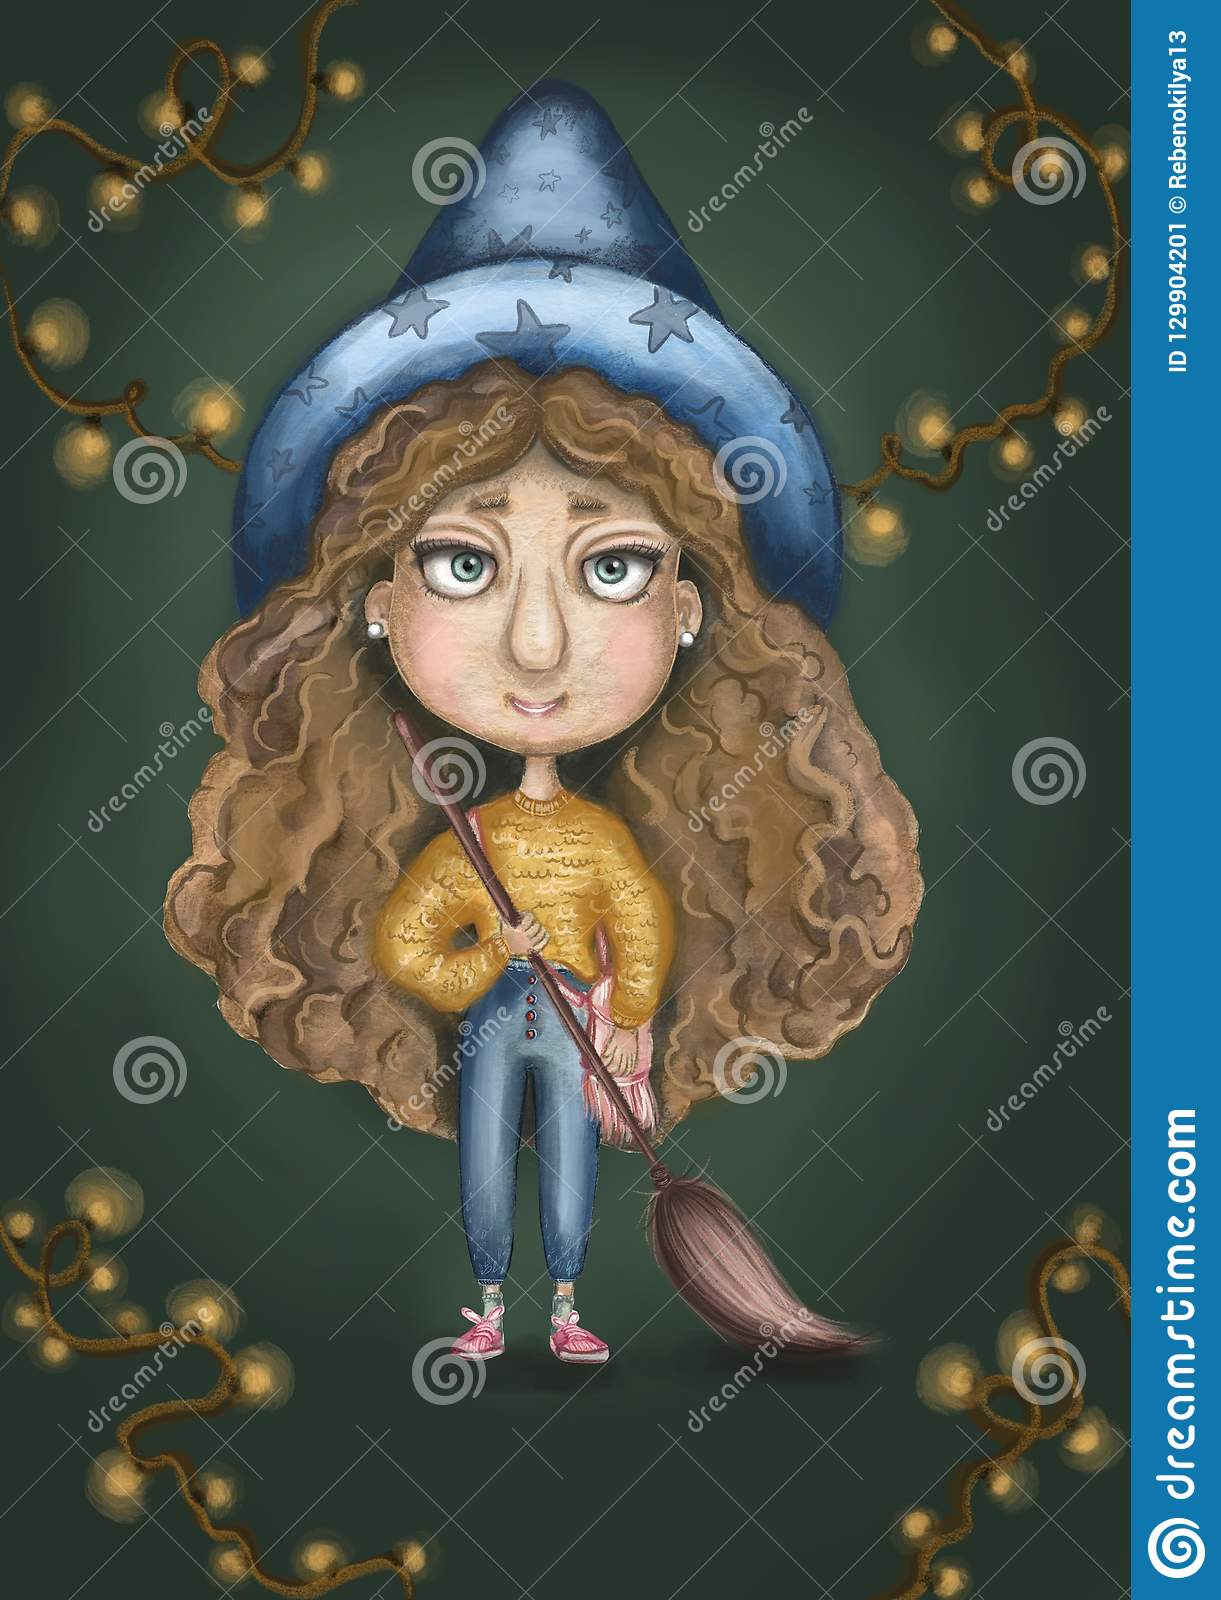 Witch girl with a flying broom in hands, yellow sweater, curly hair and a big blue hat